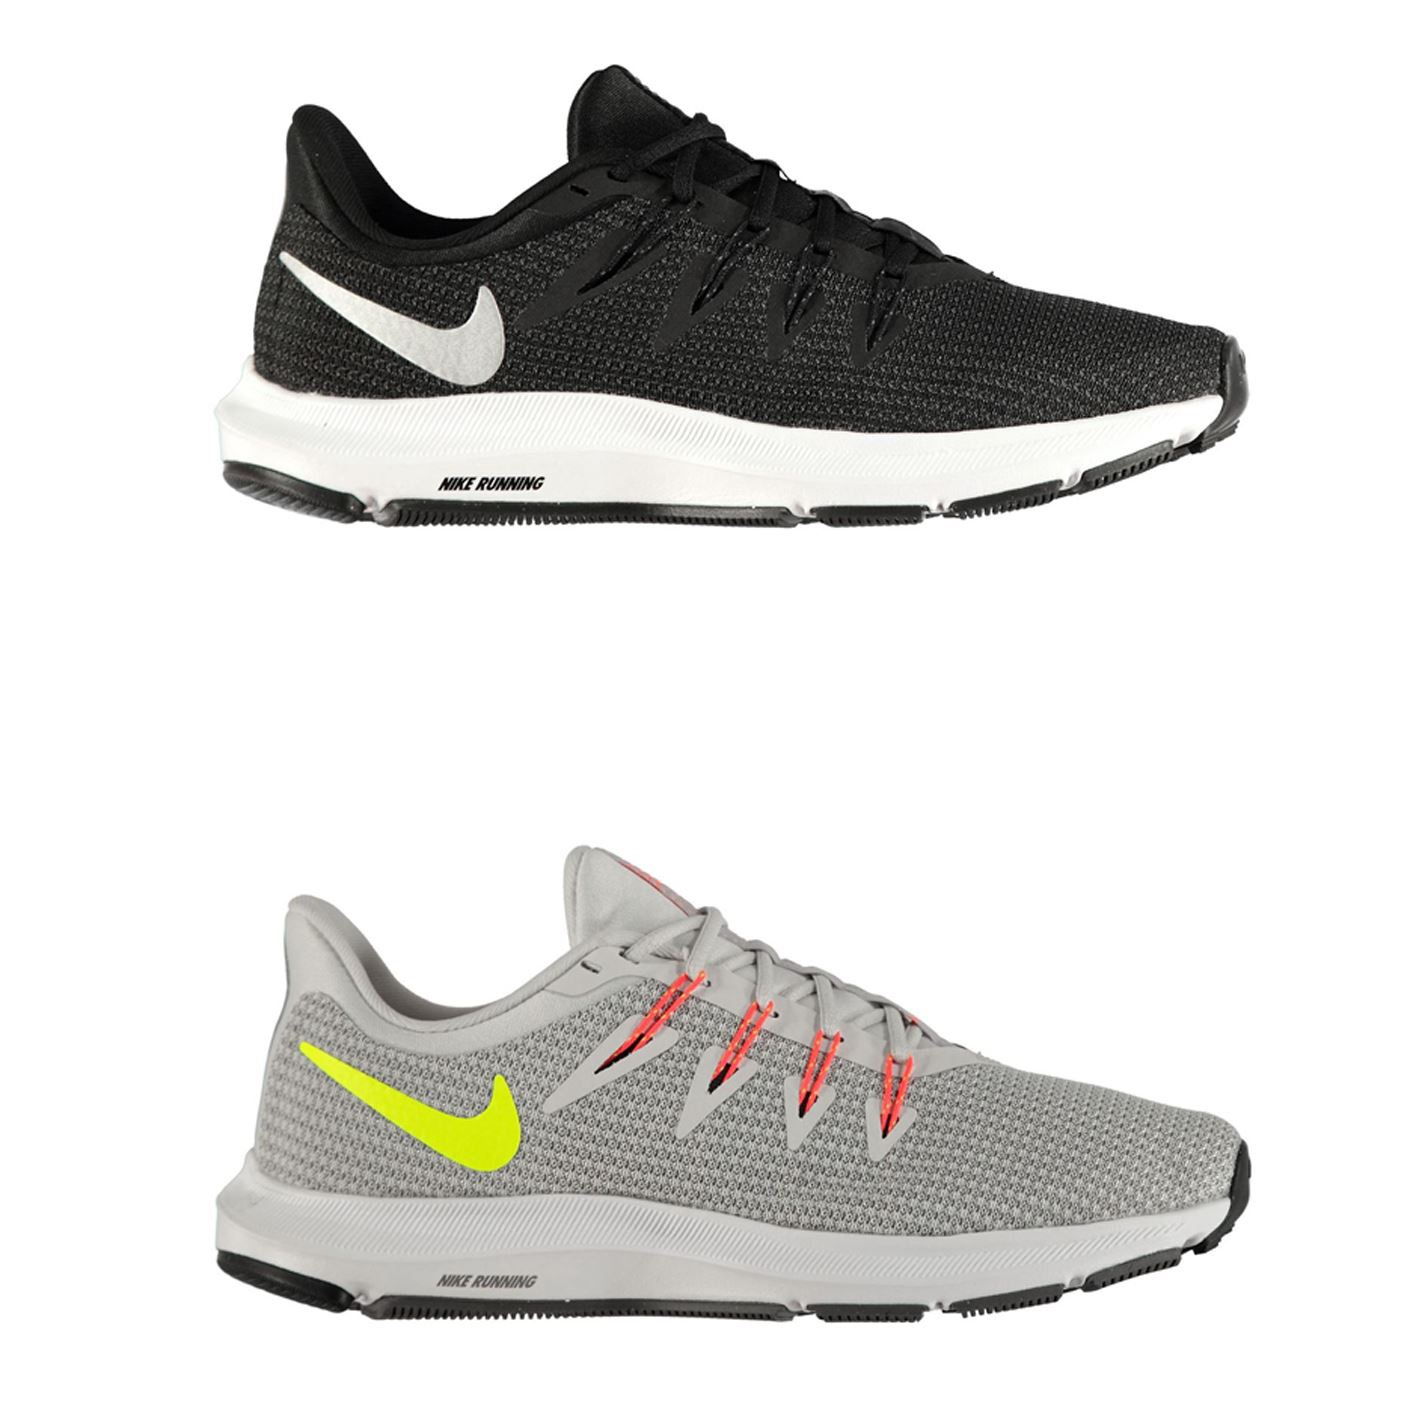 the best attitude f1c8e bf090 Nike Quest Running Shoes Womens Jogging Trainers Sneakers ...